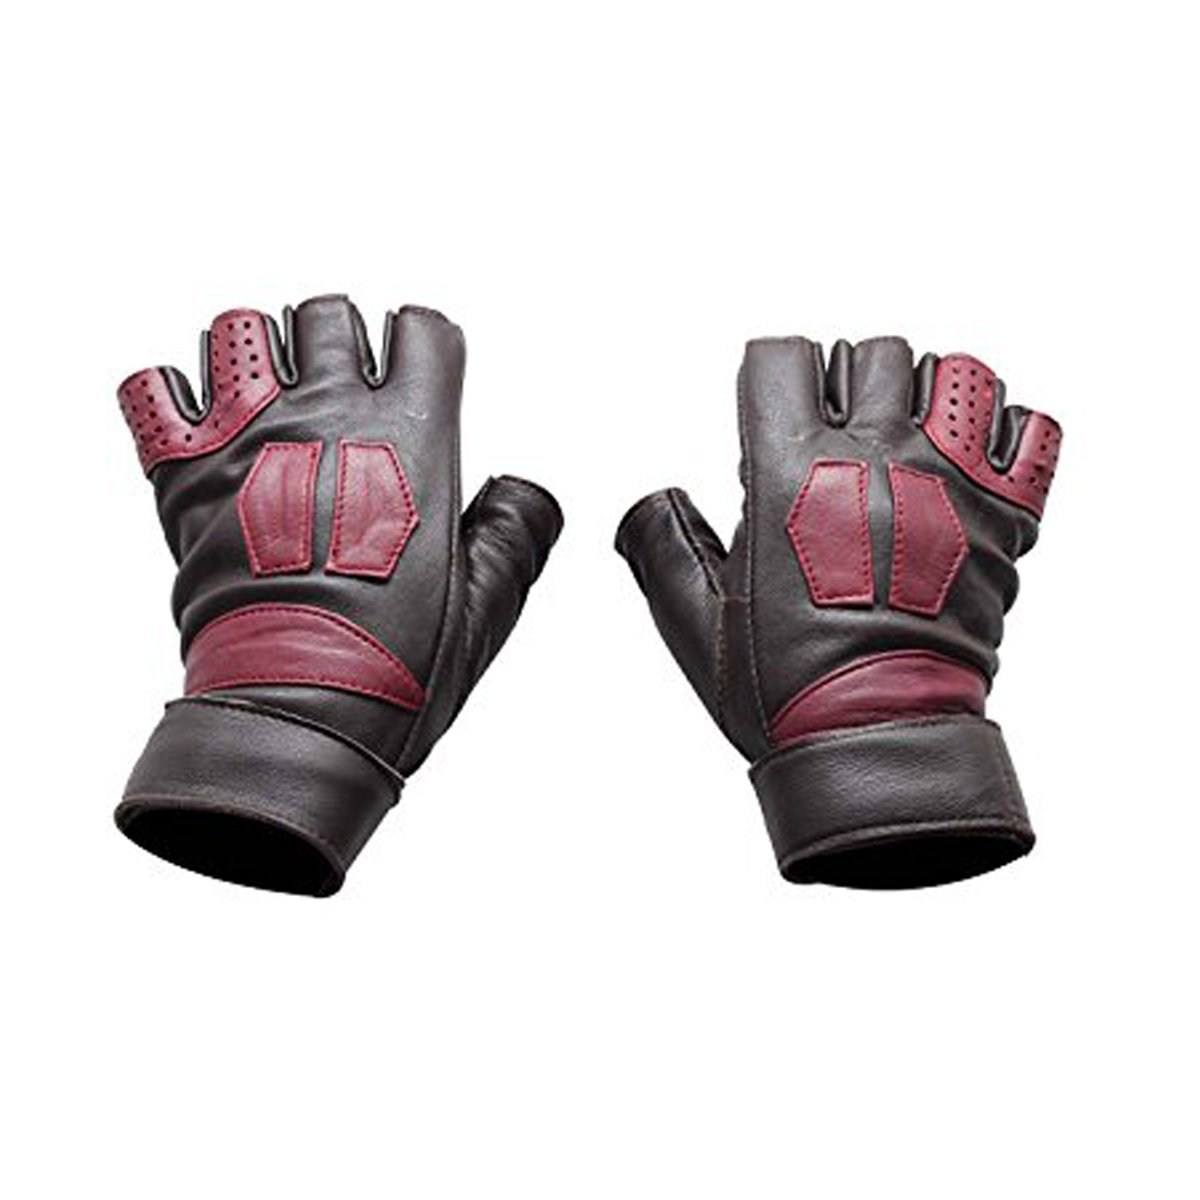 Guardians of the Galaxy Vol 2 Star-Lord Brown Leather Costume Gloves